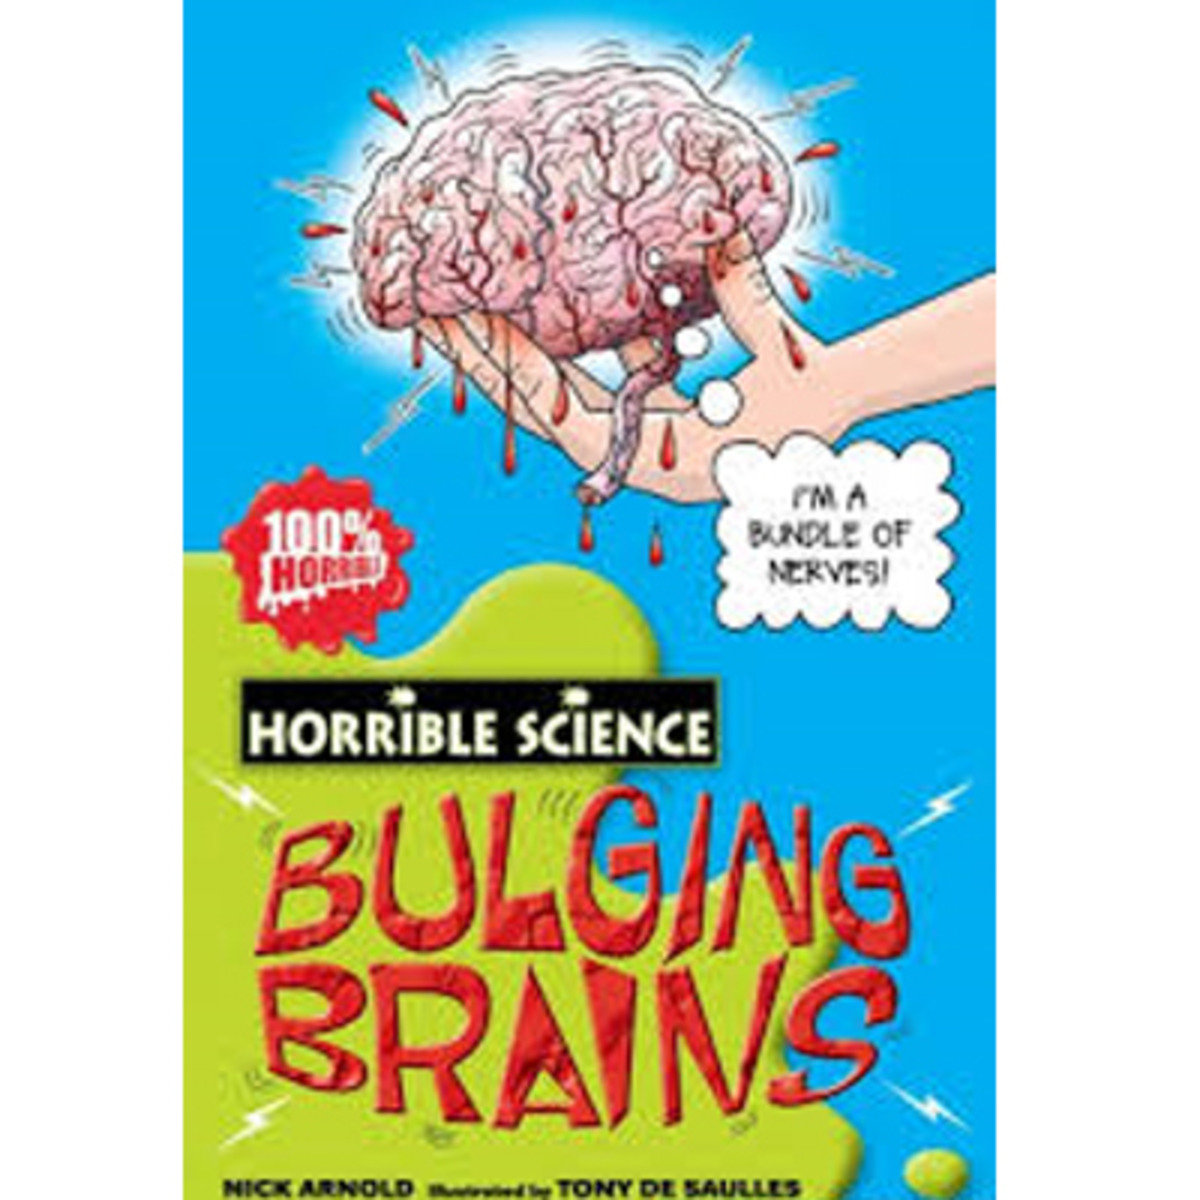 HORRIBLE SCIENCE: BULGING BRAINS 9780439944472